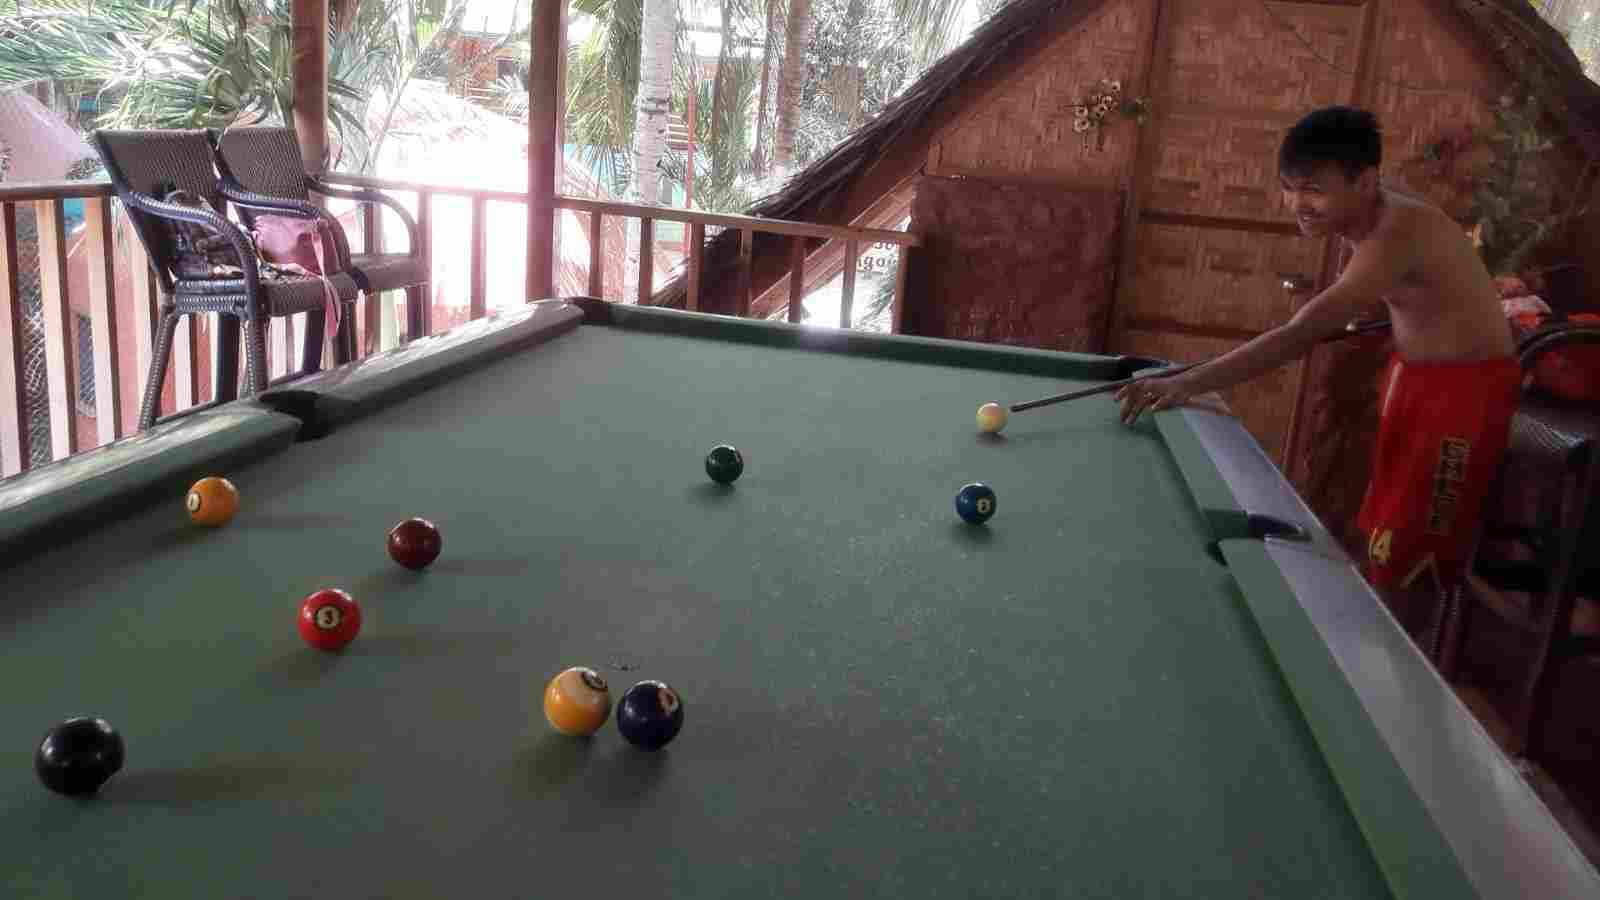 budget cheap resort in panglao white island bohol philippines in 2018, best travel summer vacation tour, panglao chocolate hills resort billiard area, billiard playing with barkada